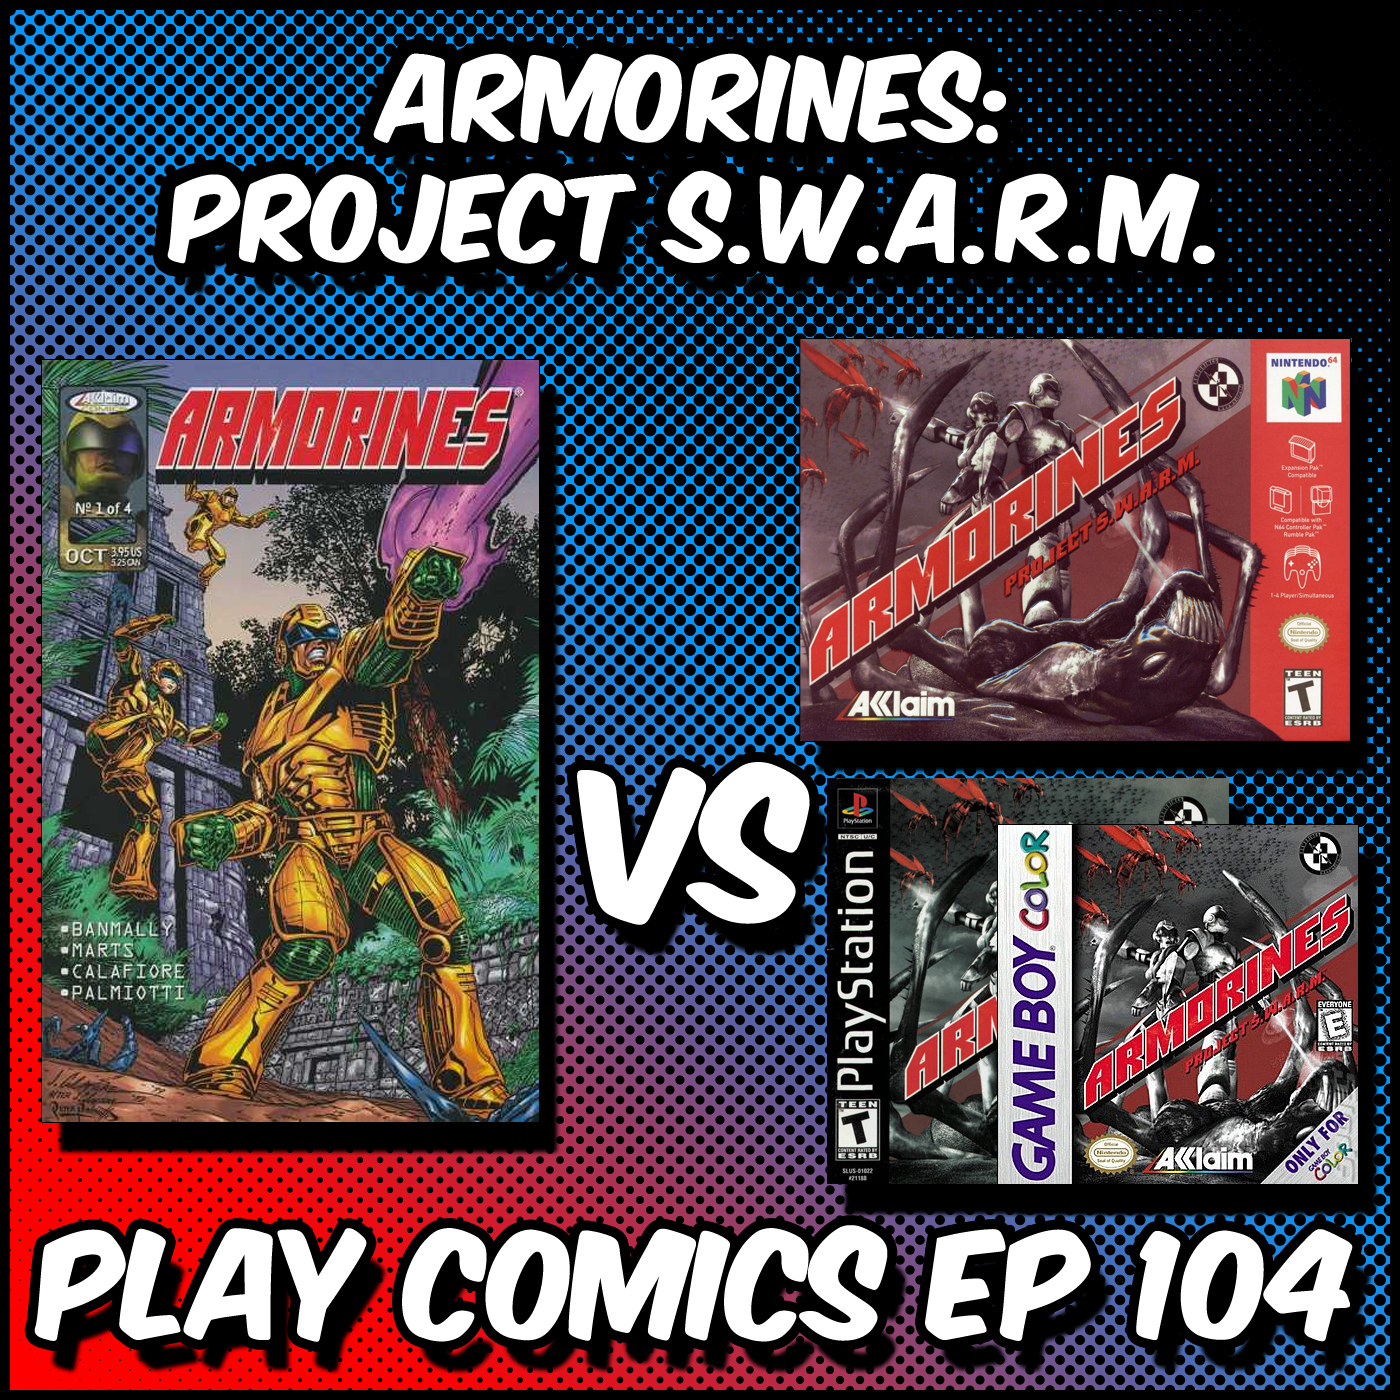 Armorines Project SWARM with Luke Herr (Multiversal Q/RPG Pals Club/Established Property Playhouse)